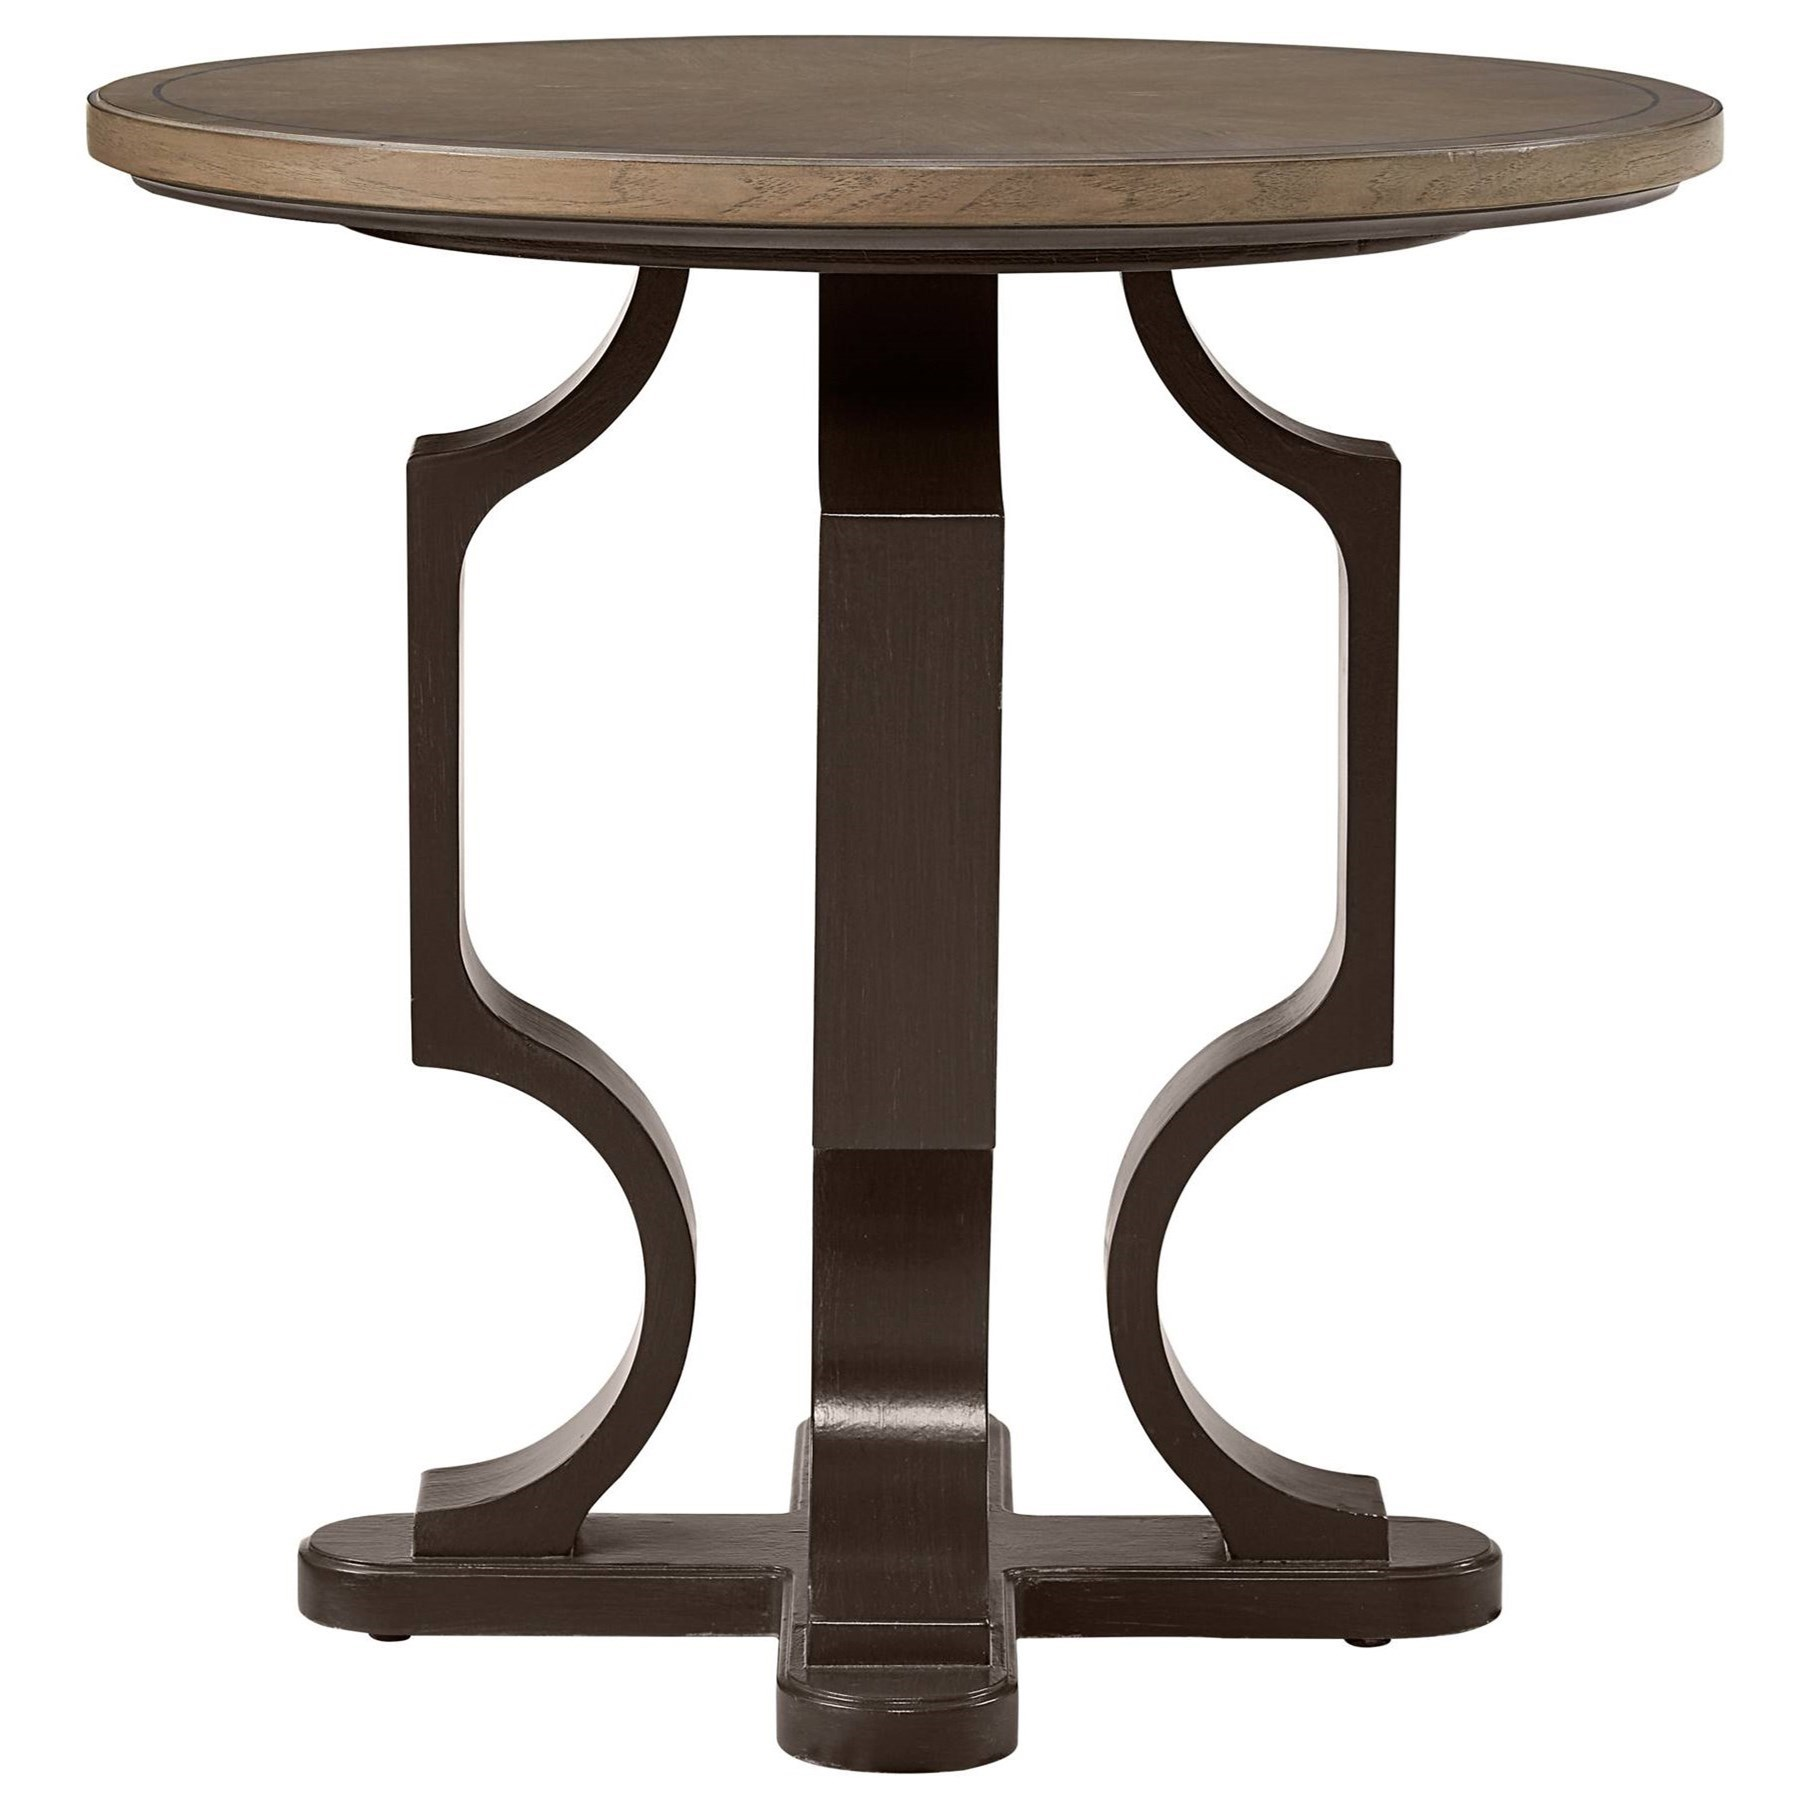 Stanley Furniture Virage Round Lamp Table - Item Number: 696-65-14